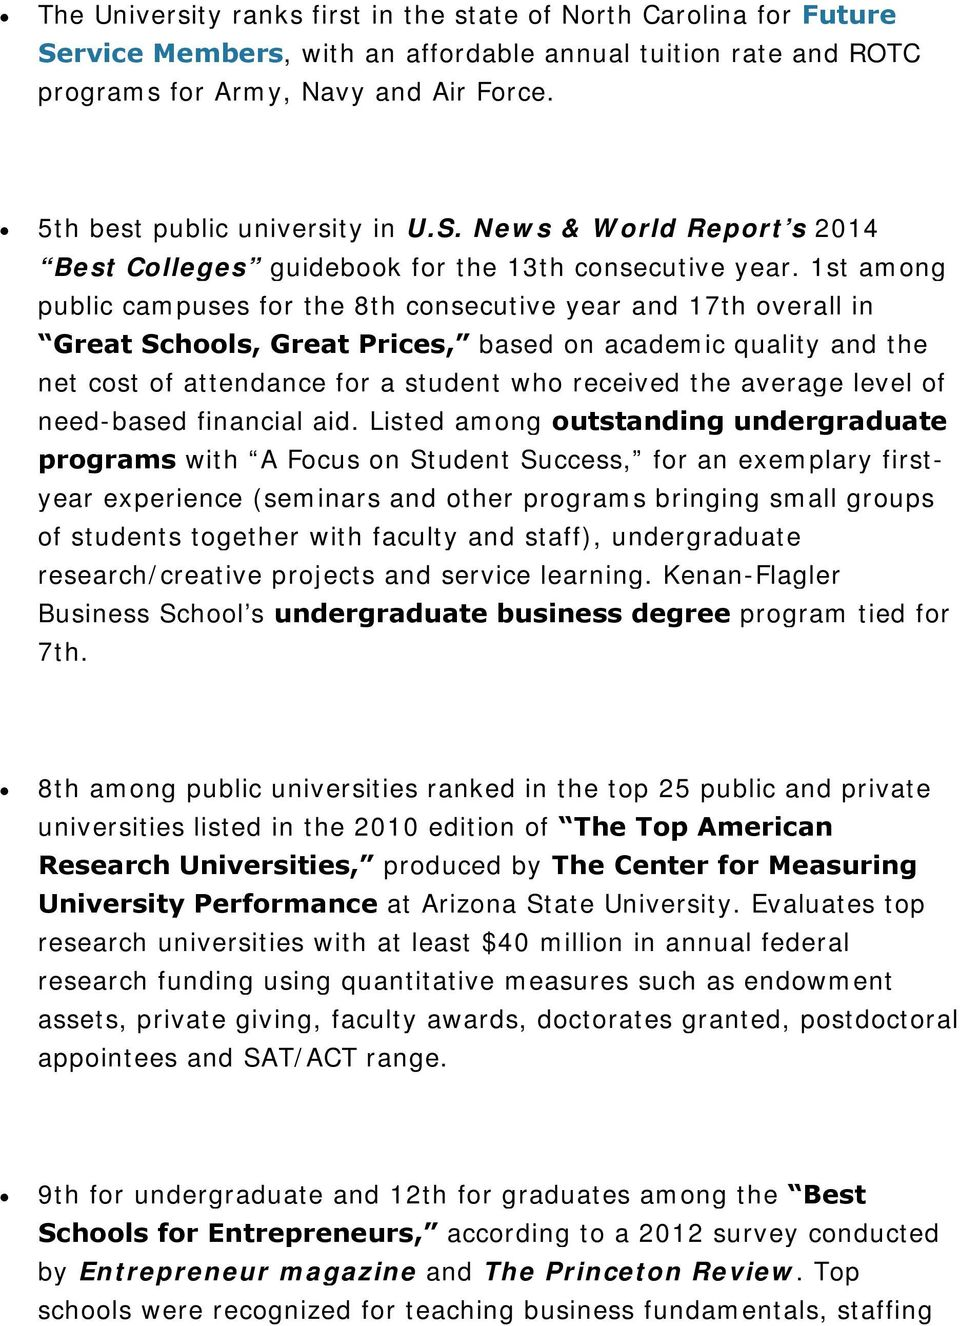 1st among public campuses for the 8th consecutive year and 17th overall in Great Schools, Great Prices, based on academic quality and the net cost of attendance for a student who received the average